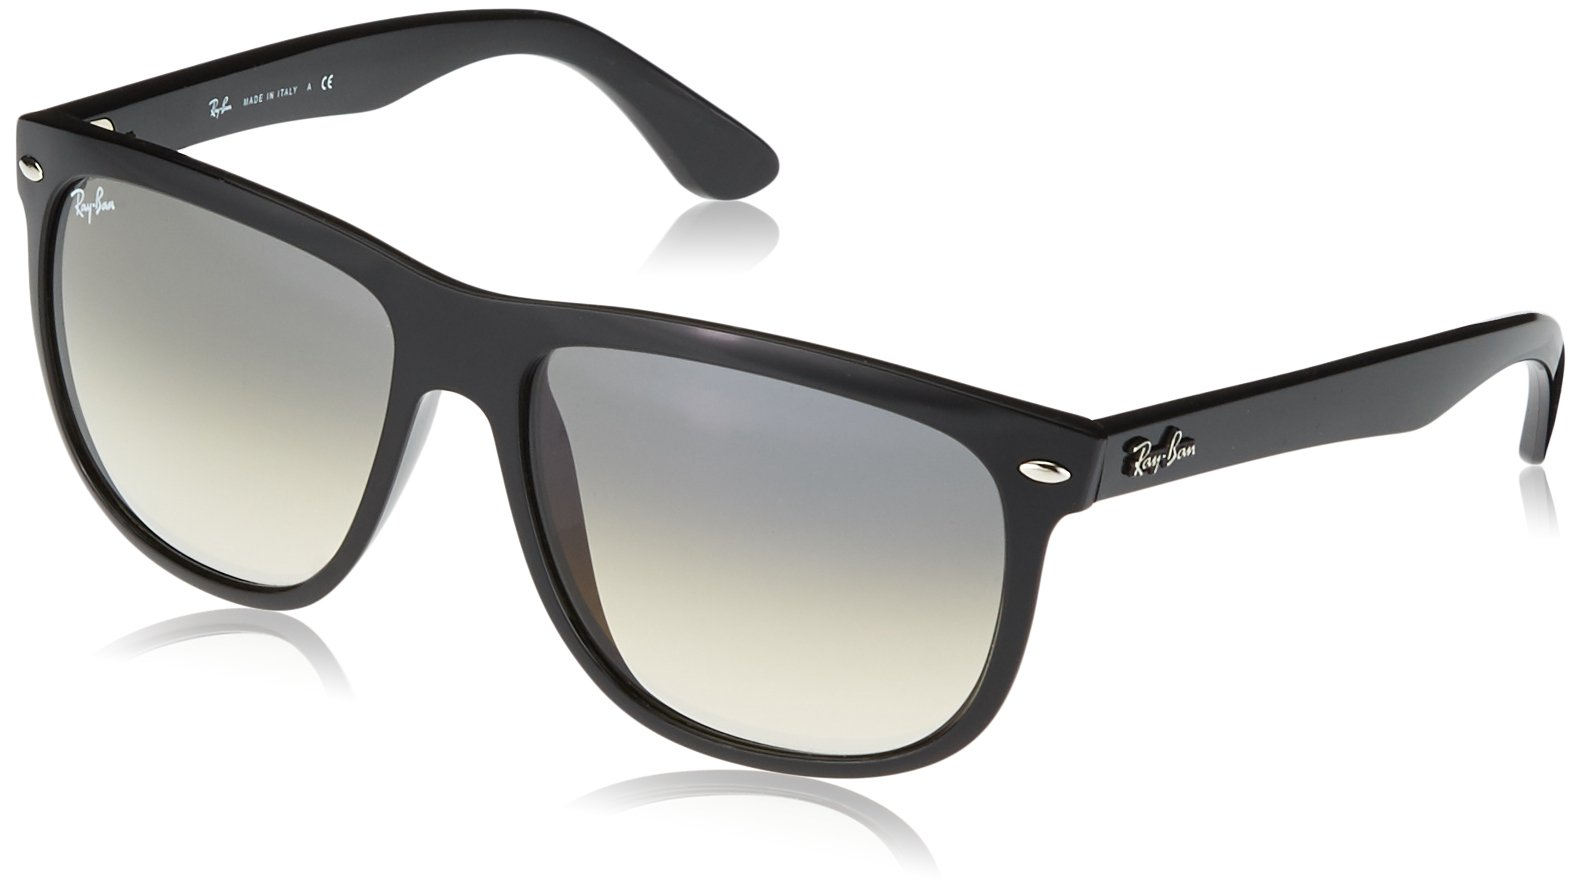 Ray-Ban RB4147 - BLACK Frame CRYSTAL GREY GRADIENT Lenses 60mm Non-Polarized by Ray-Ban